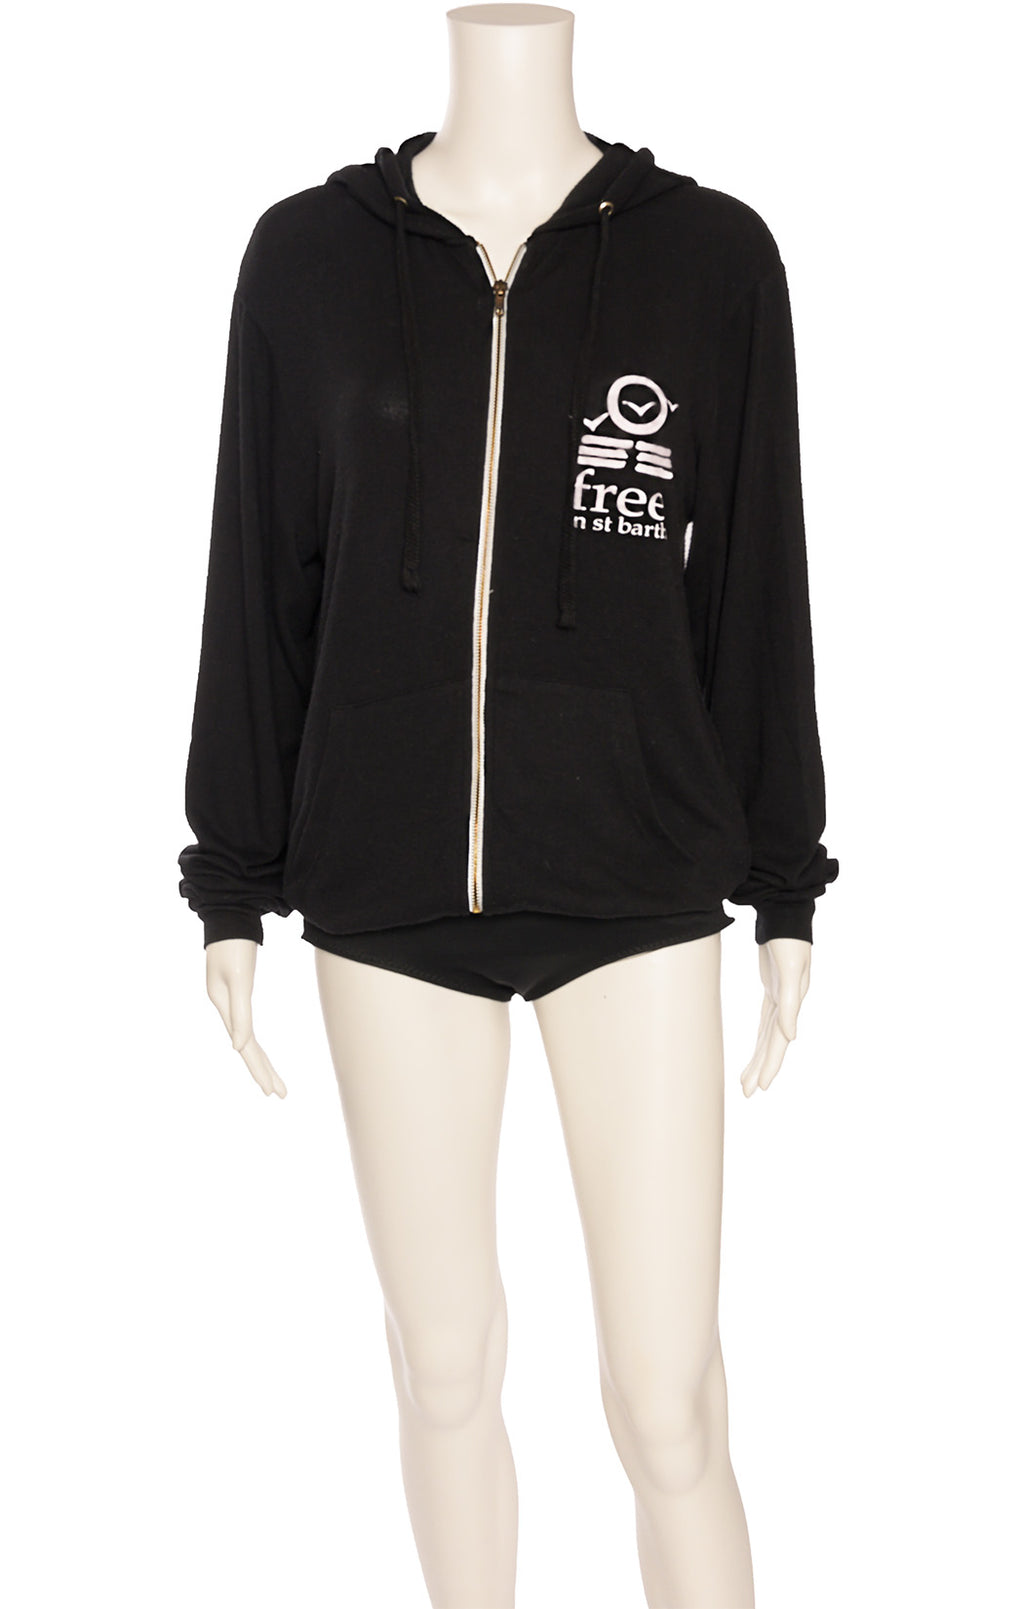 Front view of FREE in ST BARTH Sweatshirt  Size: Small